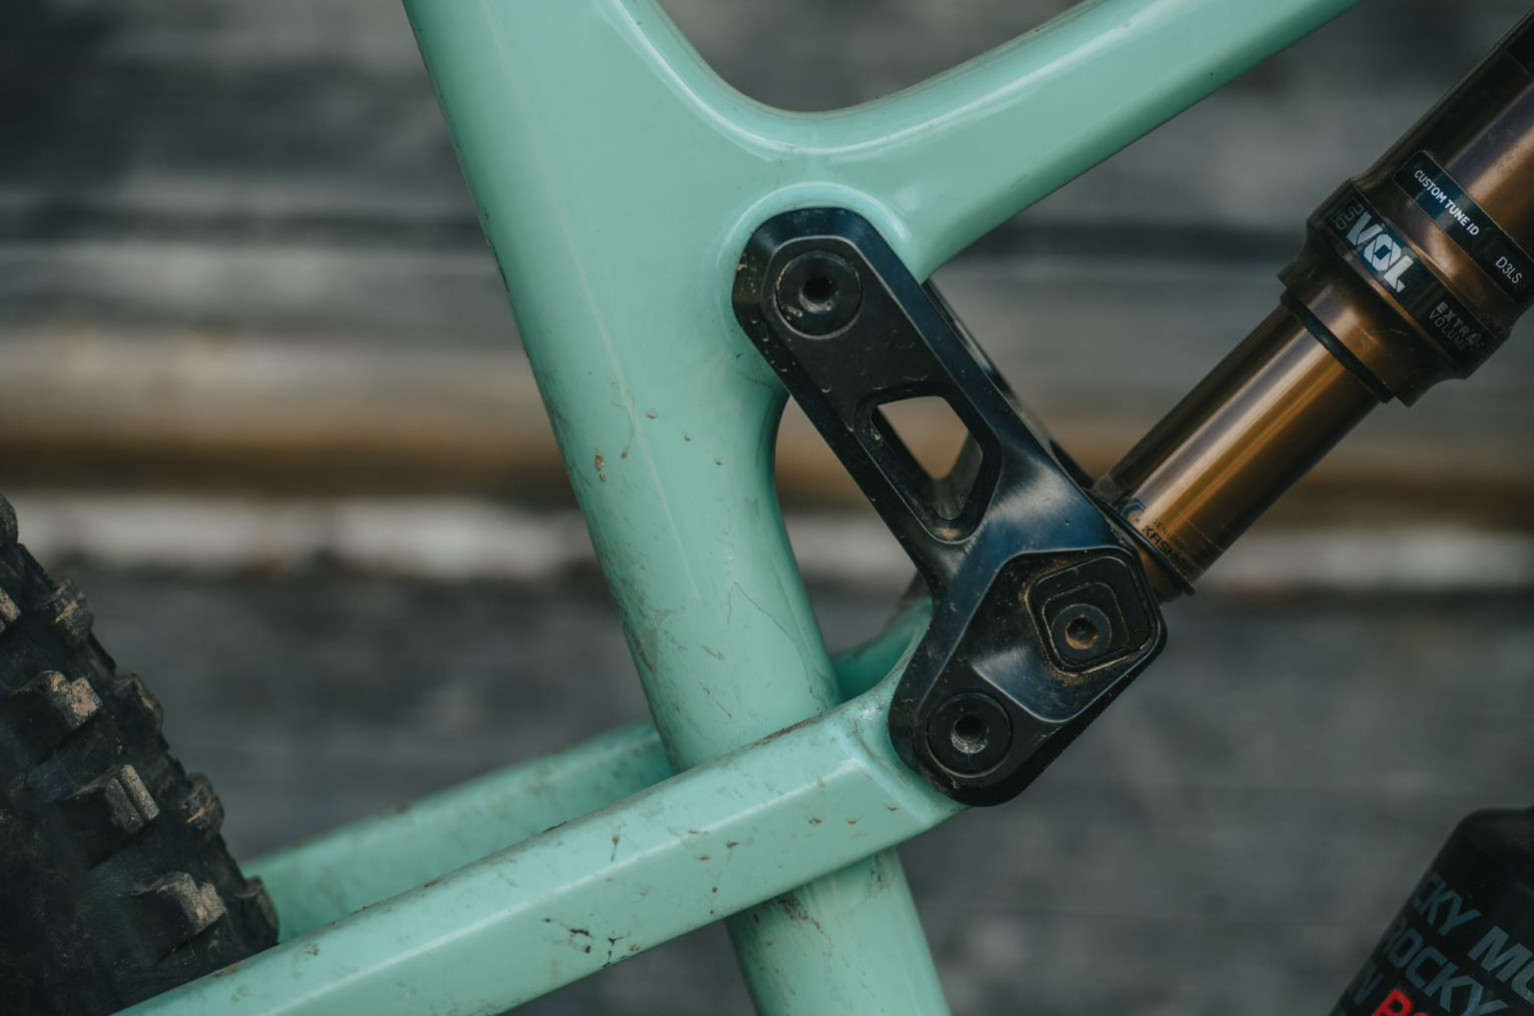 Rocky's Ride-9 means 9 different configurations with their interlocking flip-chips